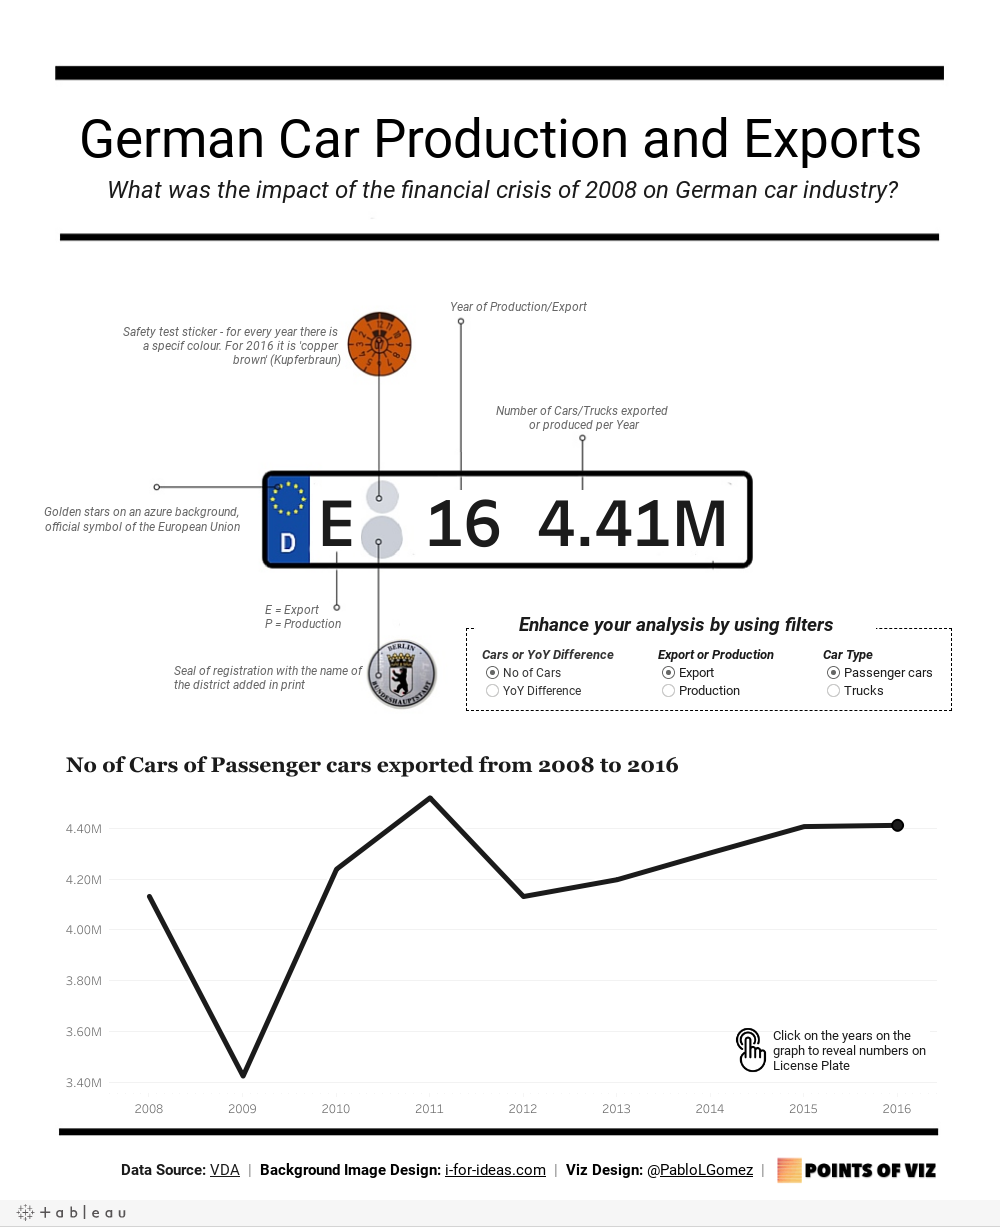 German Car Production and Exports